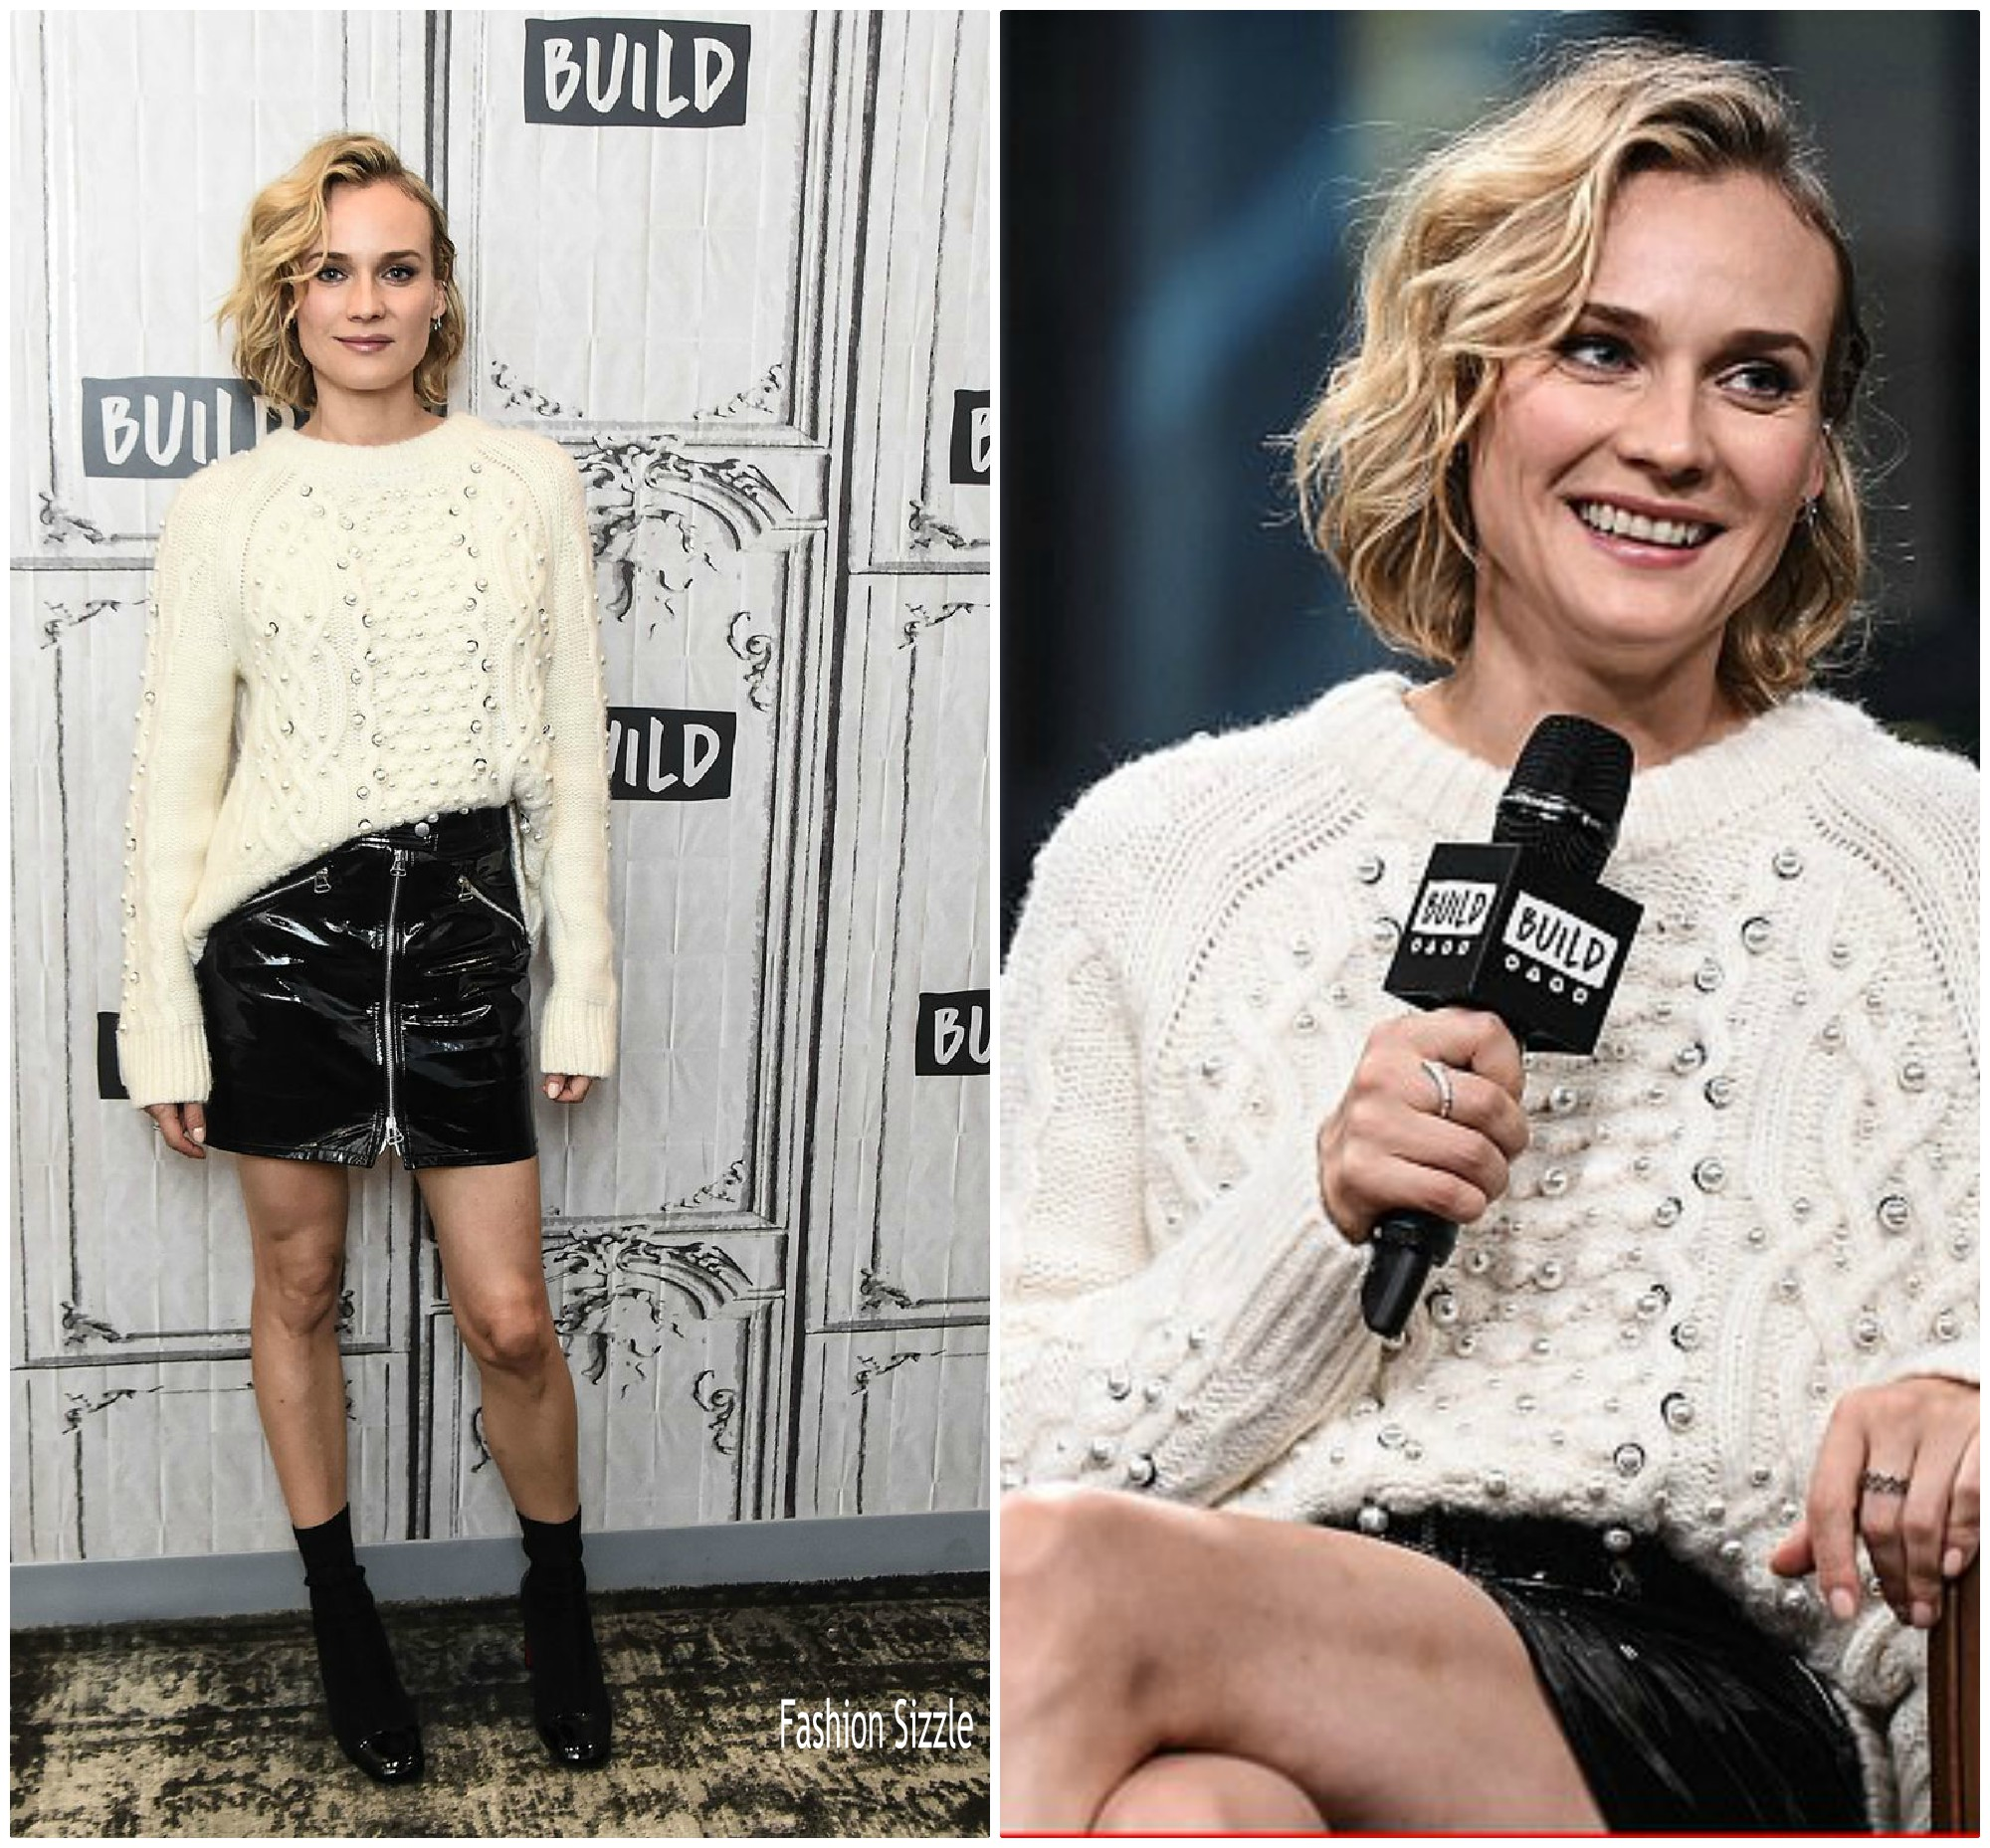 diane-kruger-build-series-sag-aftra-foundation-conversations-in-the-fade